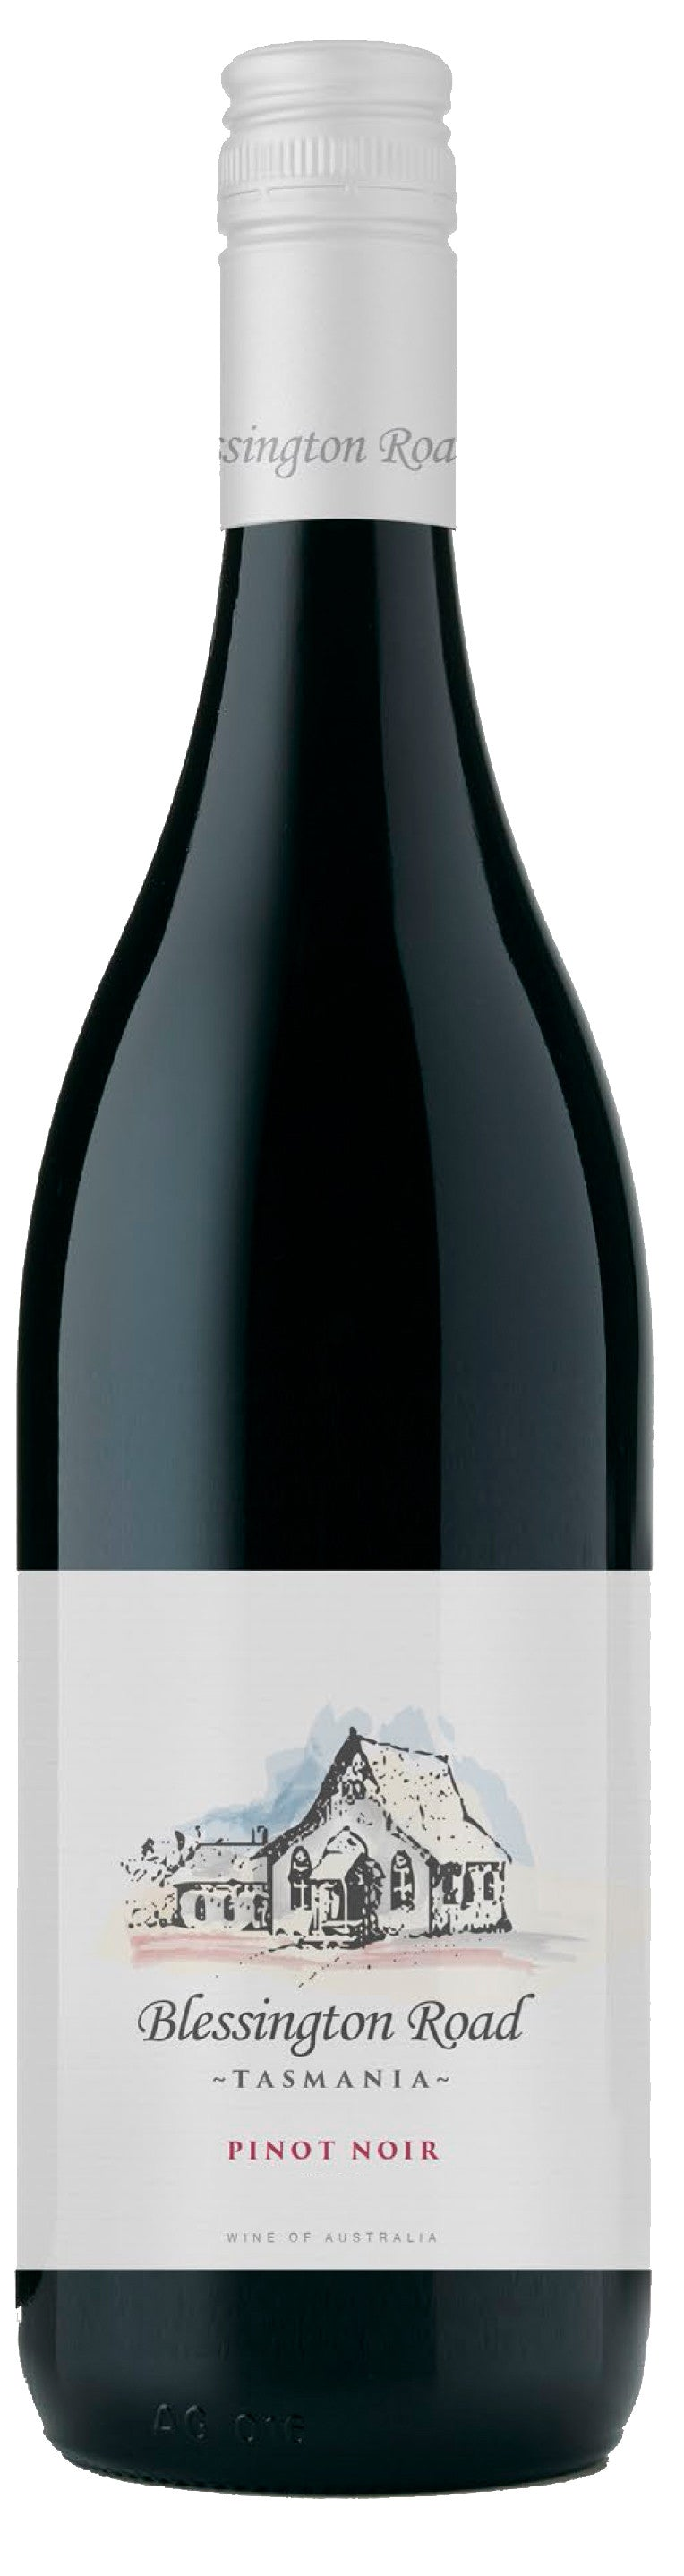 Blessington Road Pinot Noir 2016 - Network Wines